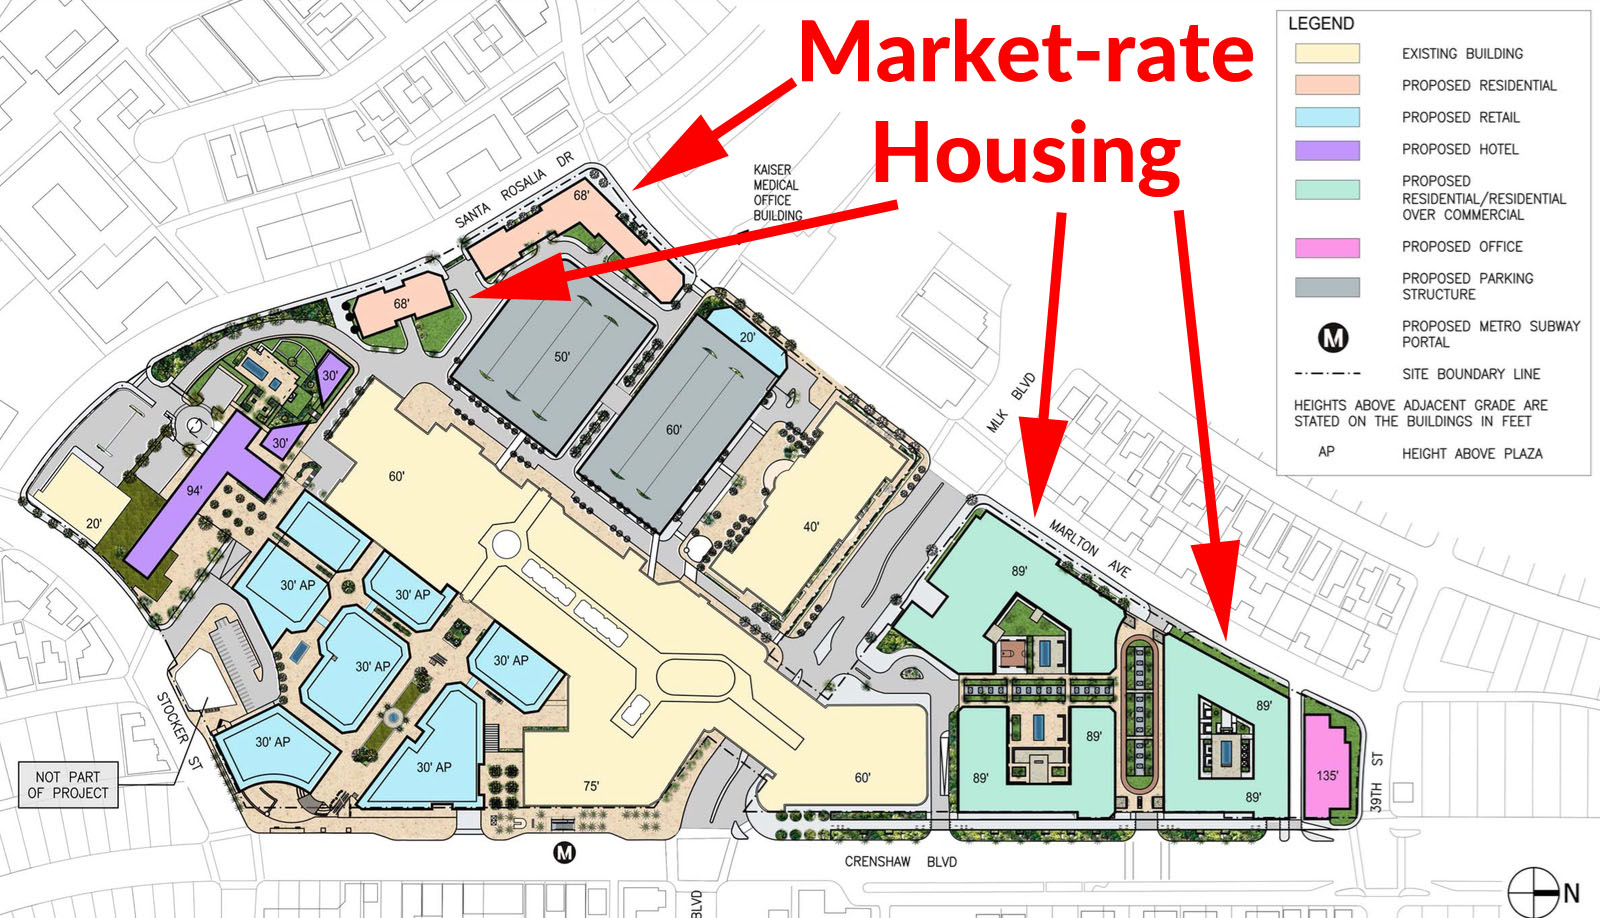 Crenshaw Mall Market Rate Housing